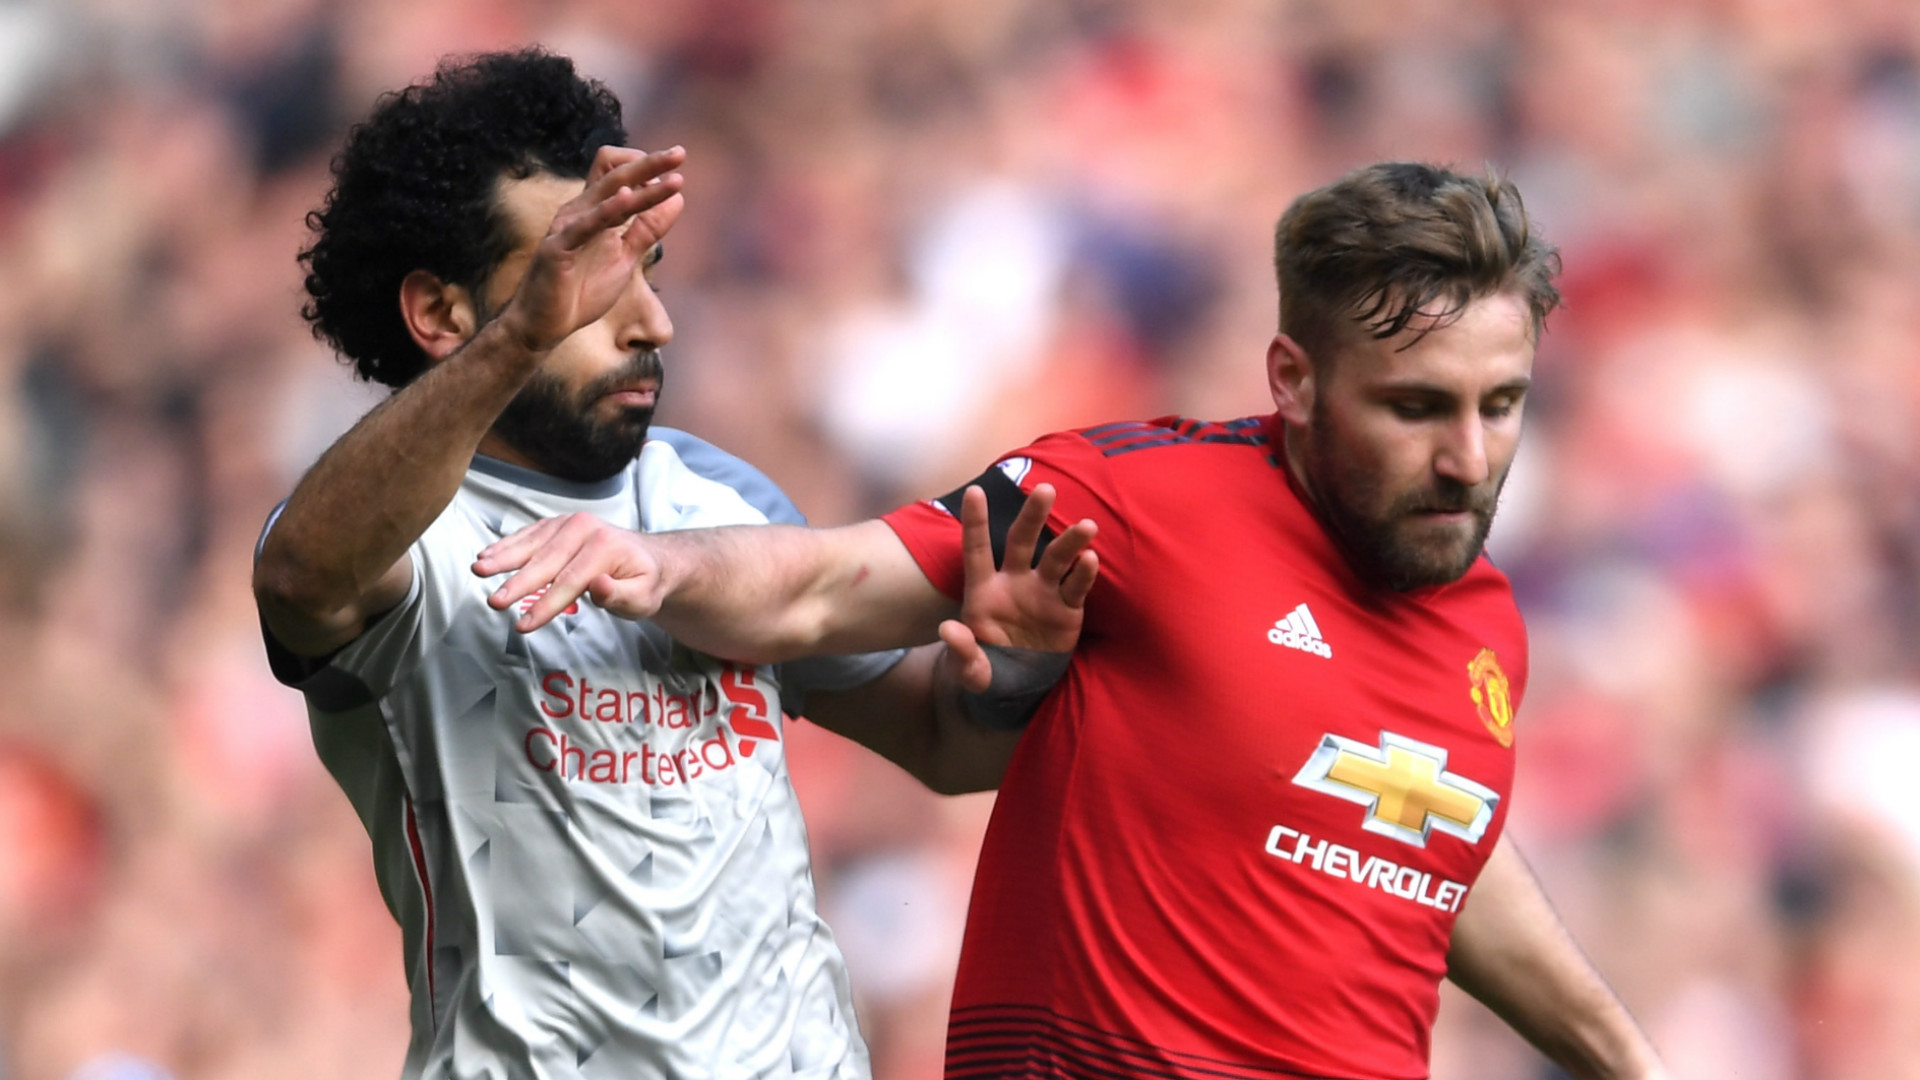 'They won't have it as easy next season' - Shaw fires warning to Man City & Liverpool